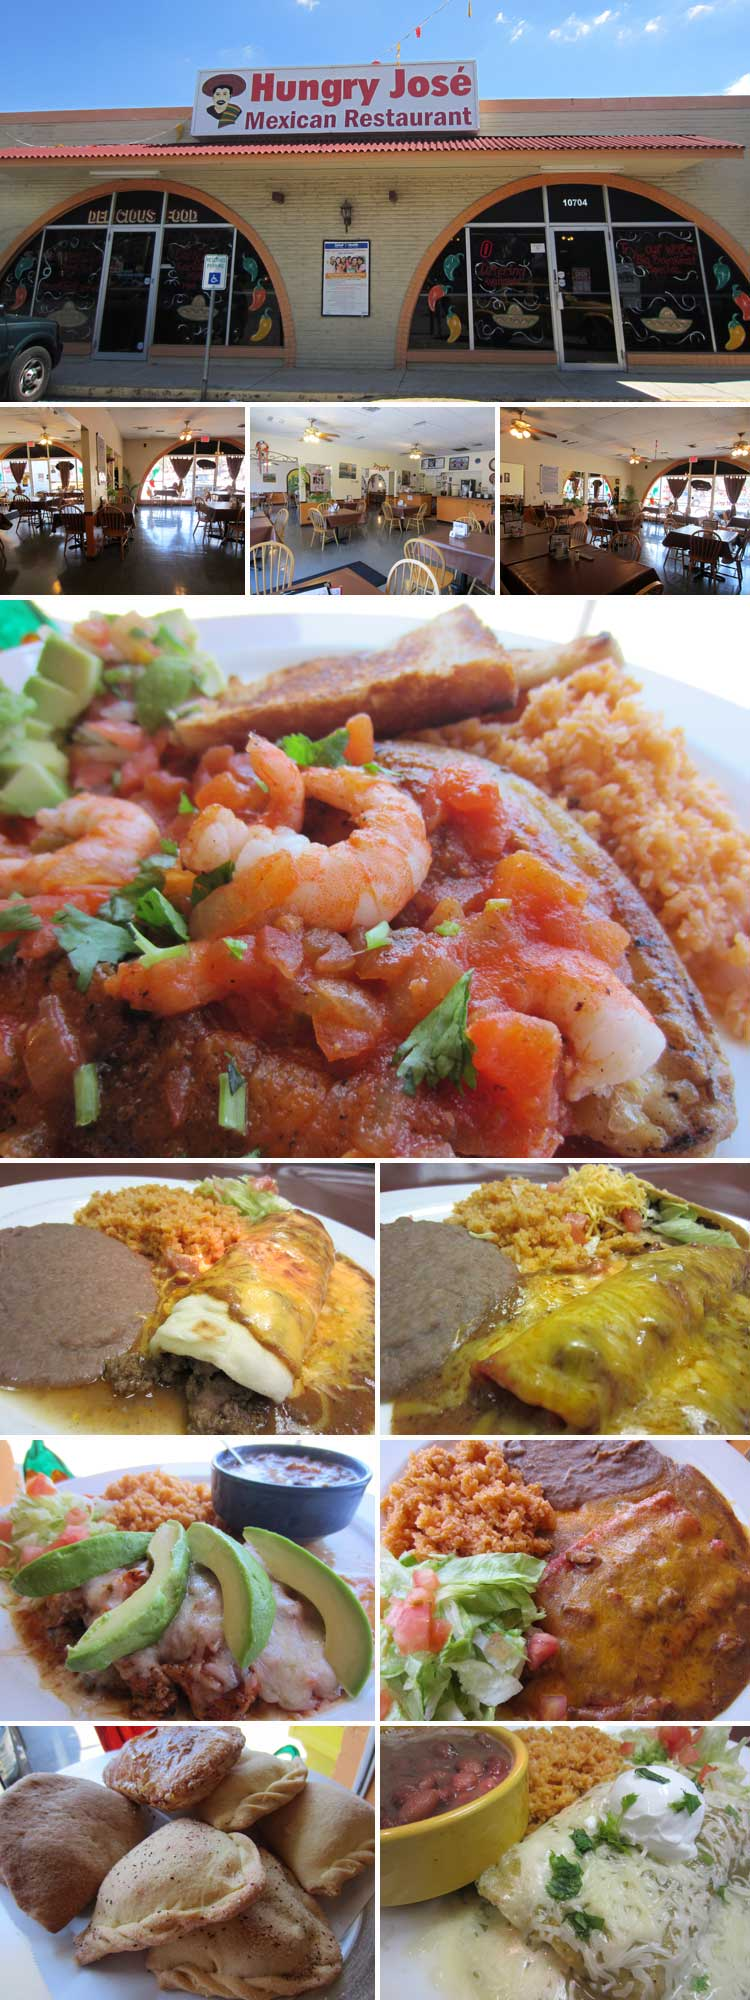 Hungry Jose Mexican Restaurant Amp Catering San Antonio